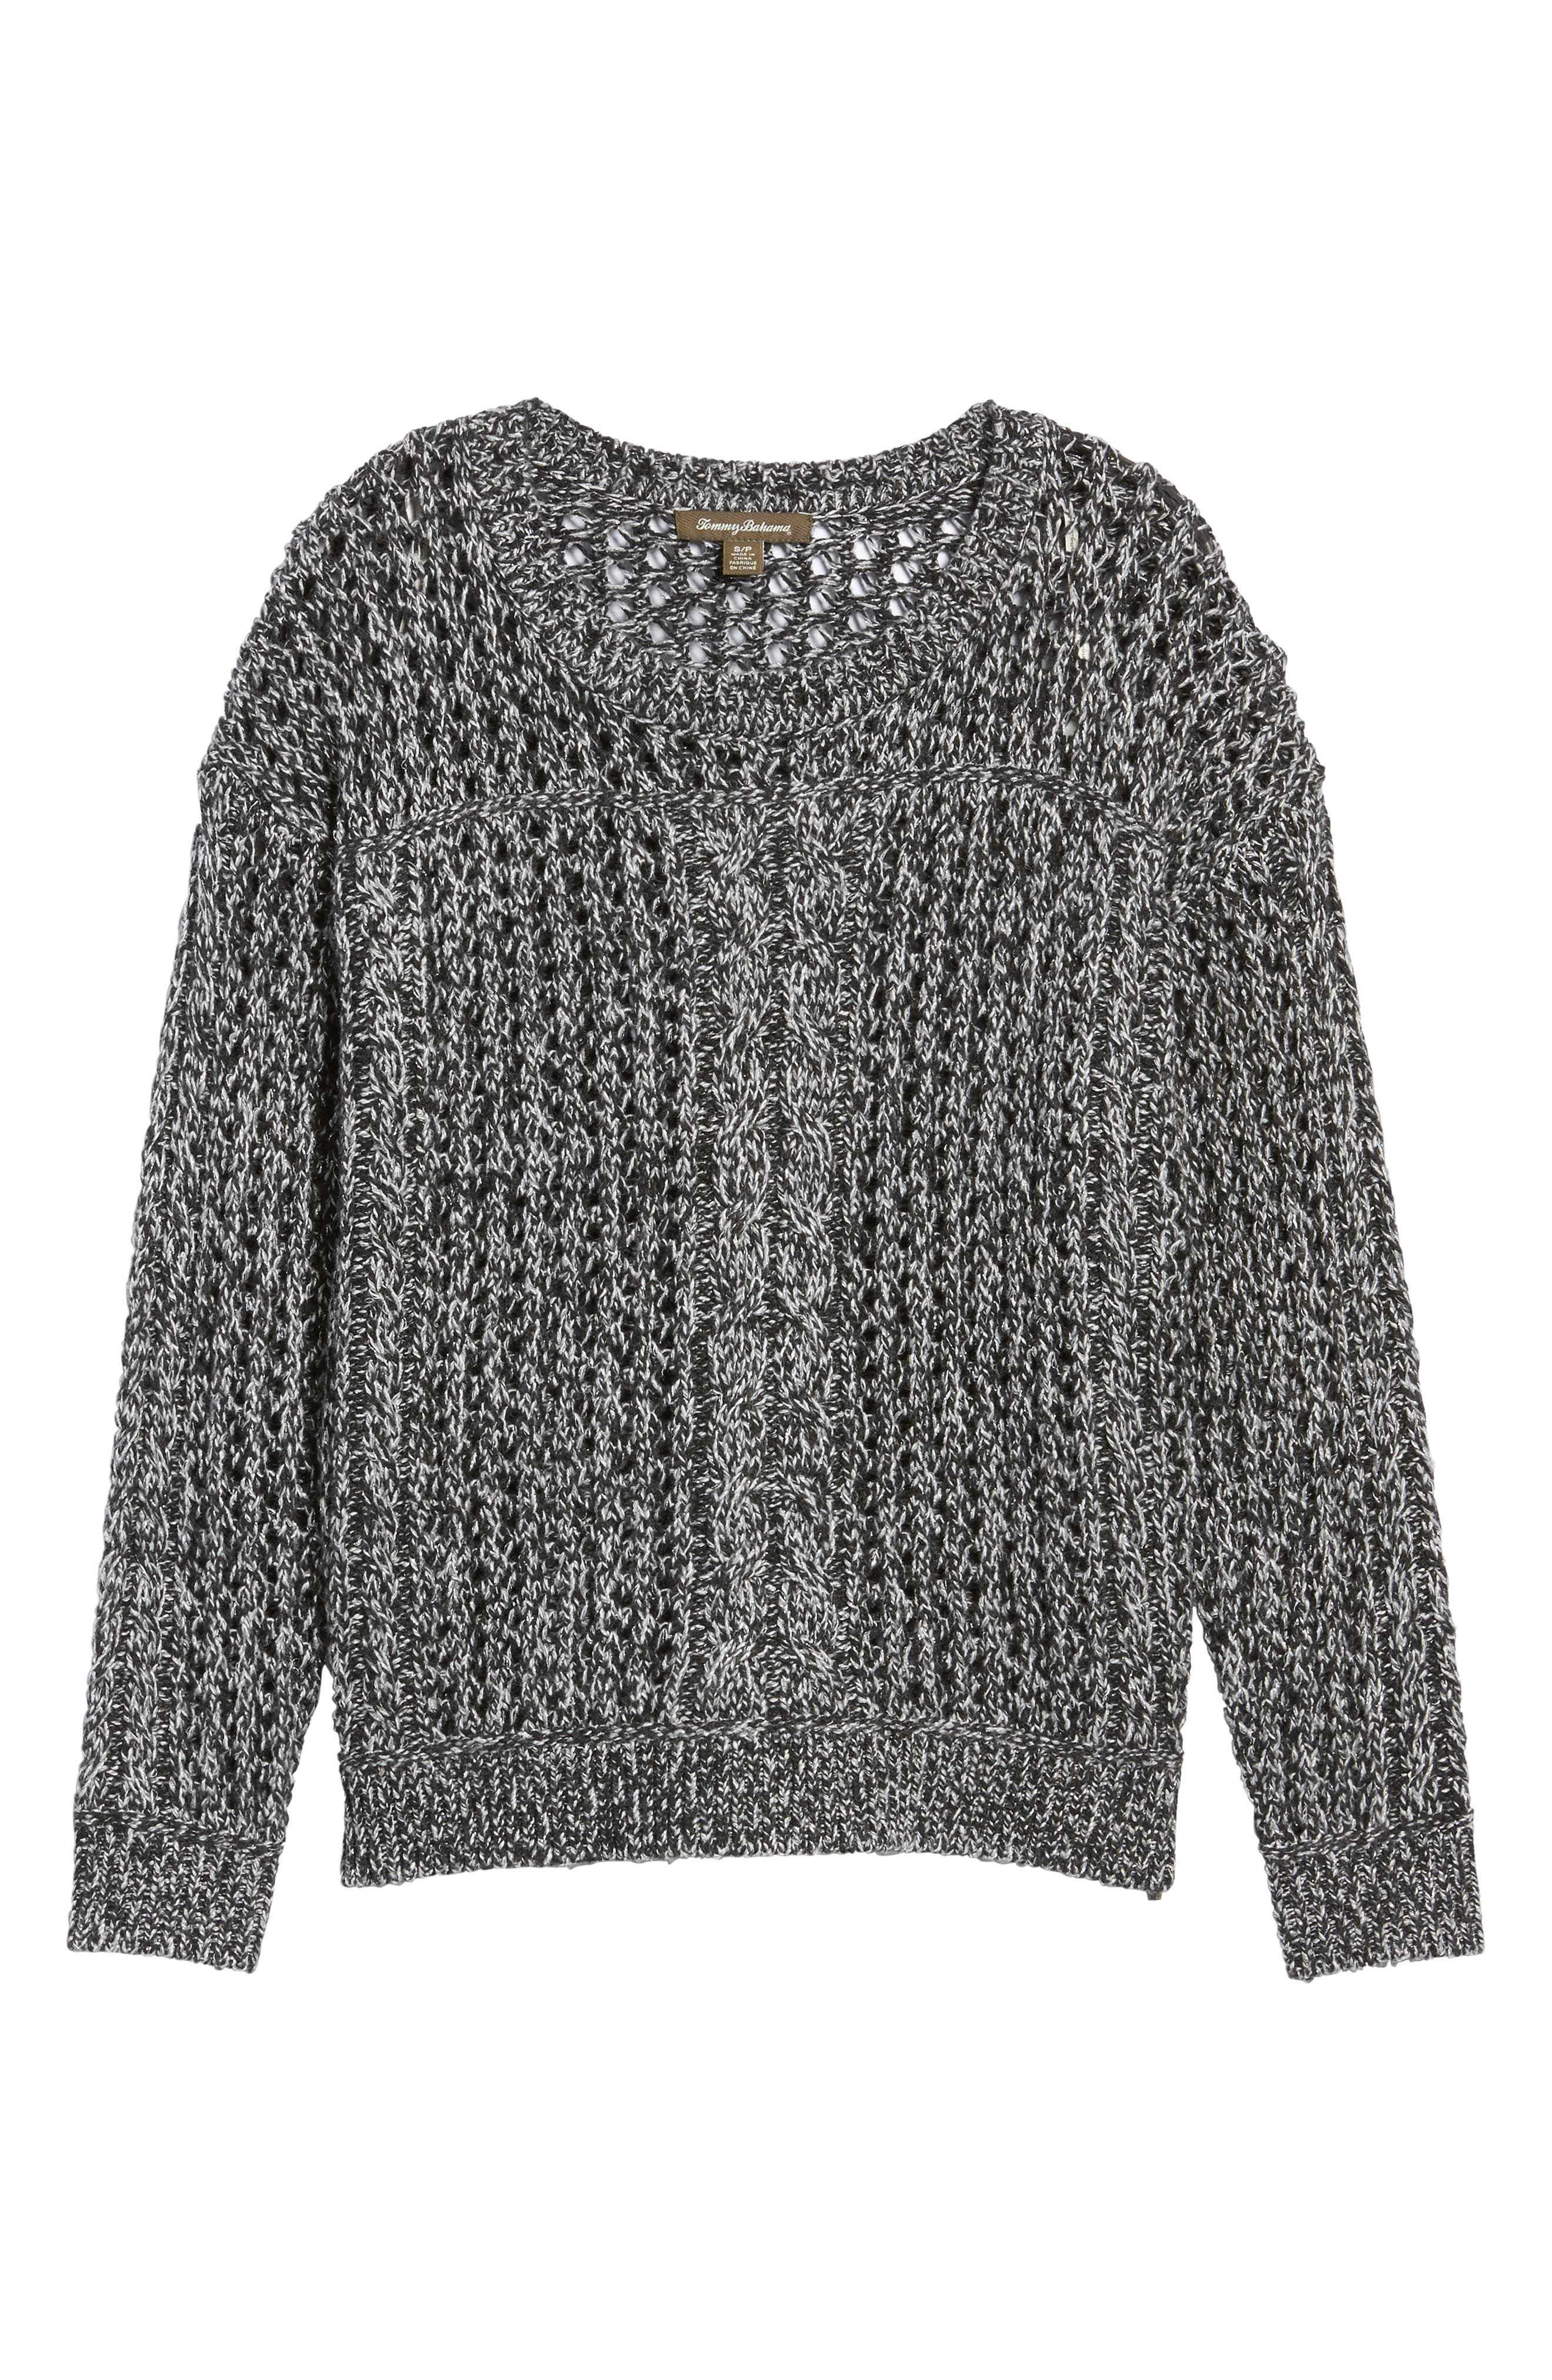 Cascade Cable Sparkle Crew Sweater,                             Alternate thumbnail 6, color,                             Charcoal Heather